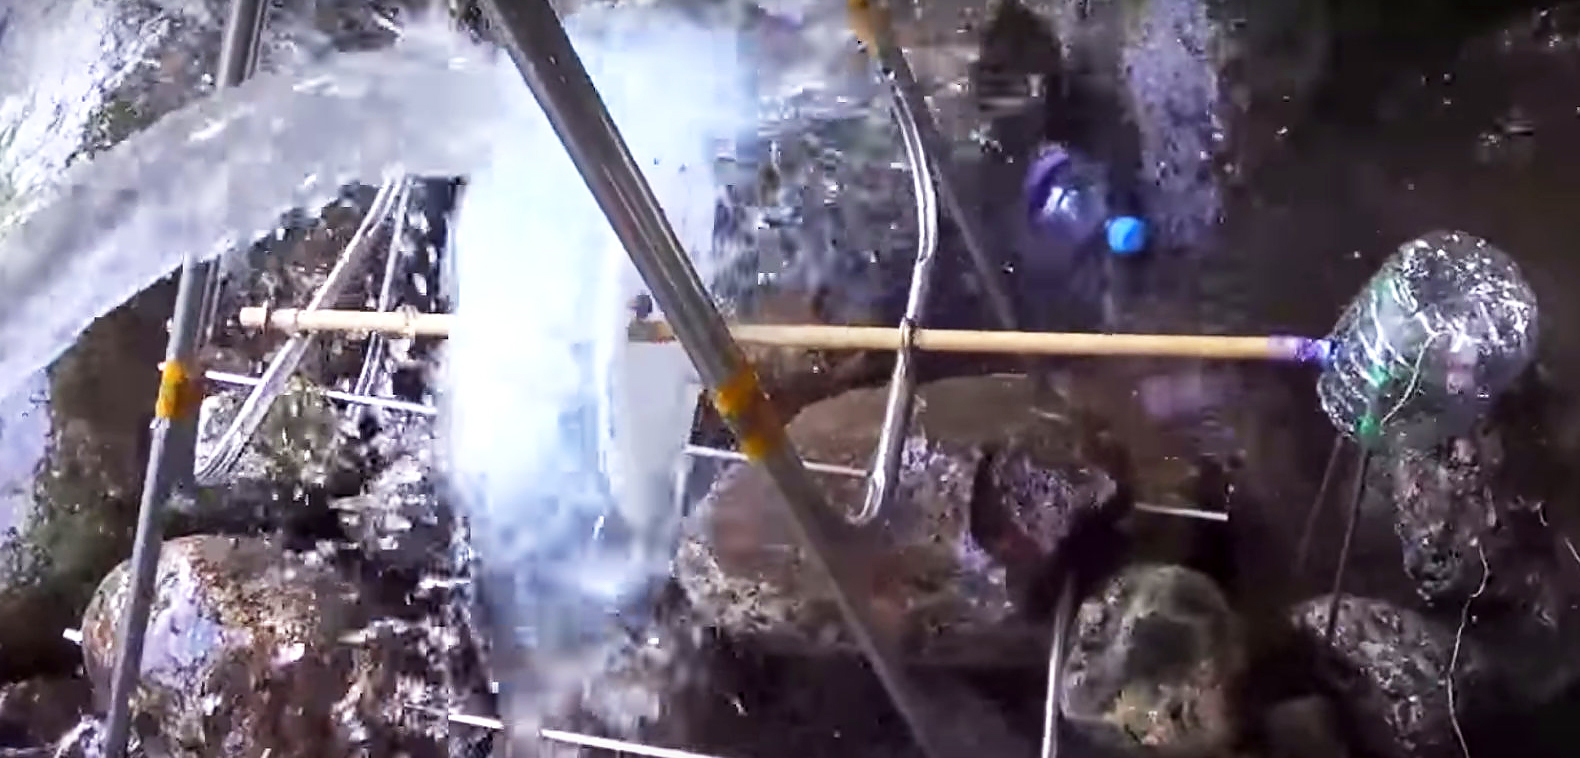 DIY hydroelectric water wheel uses recycled plastic bottles to generate free electricity